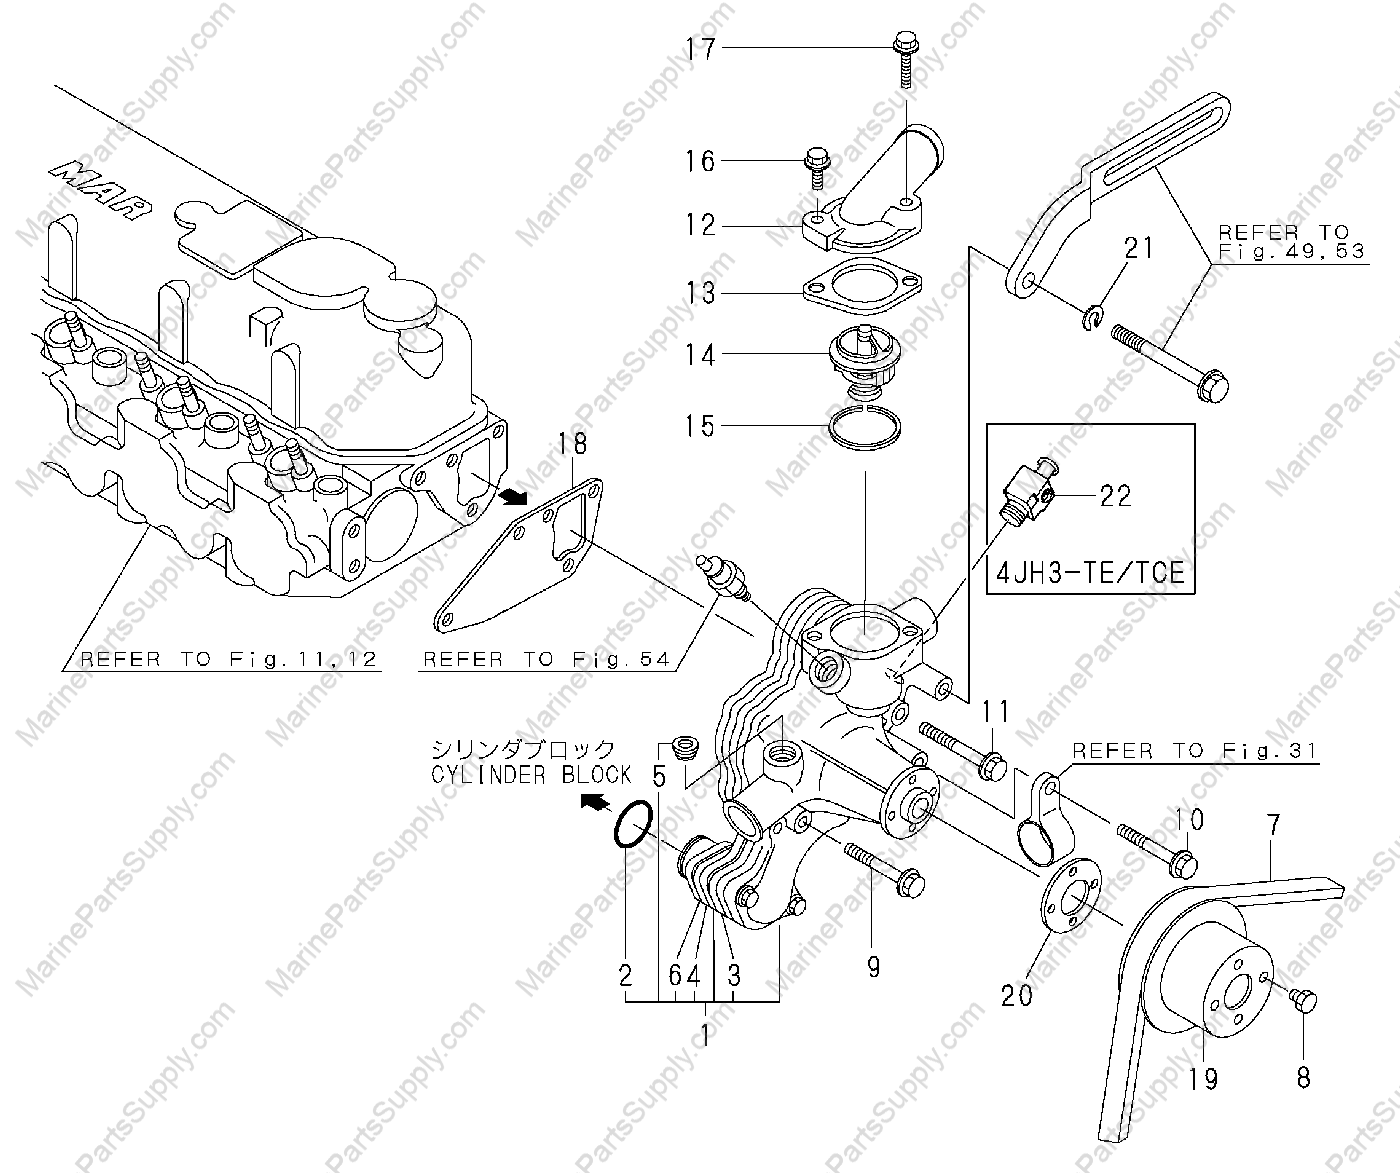 hitachi alternator wiring diagram